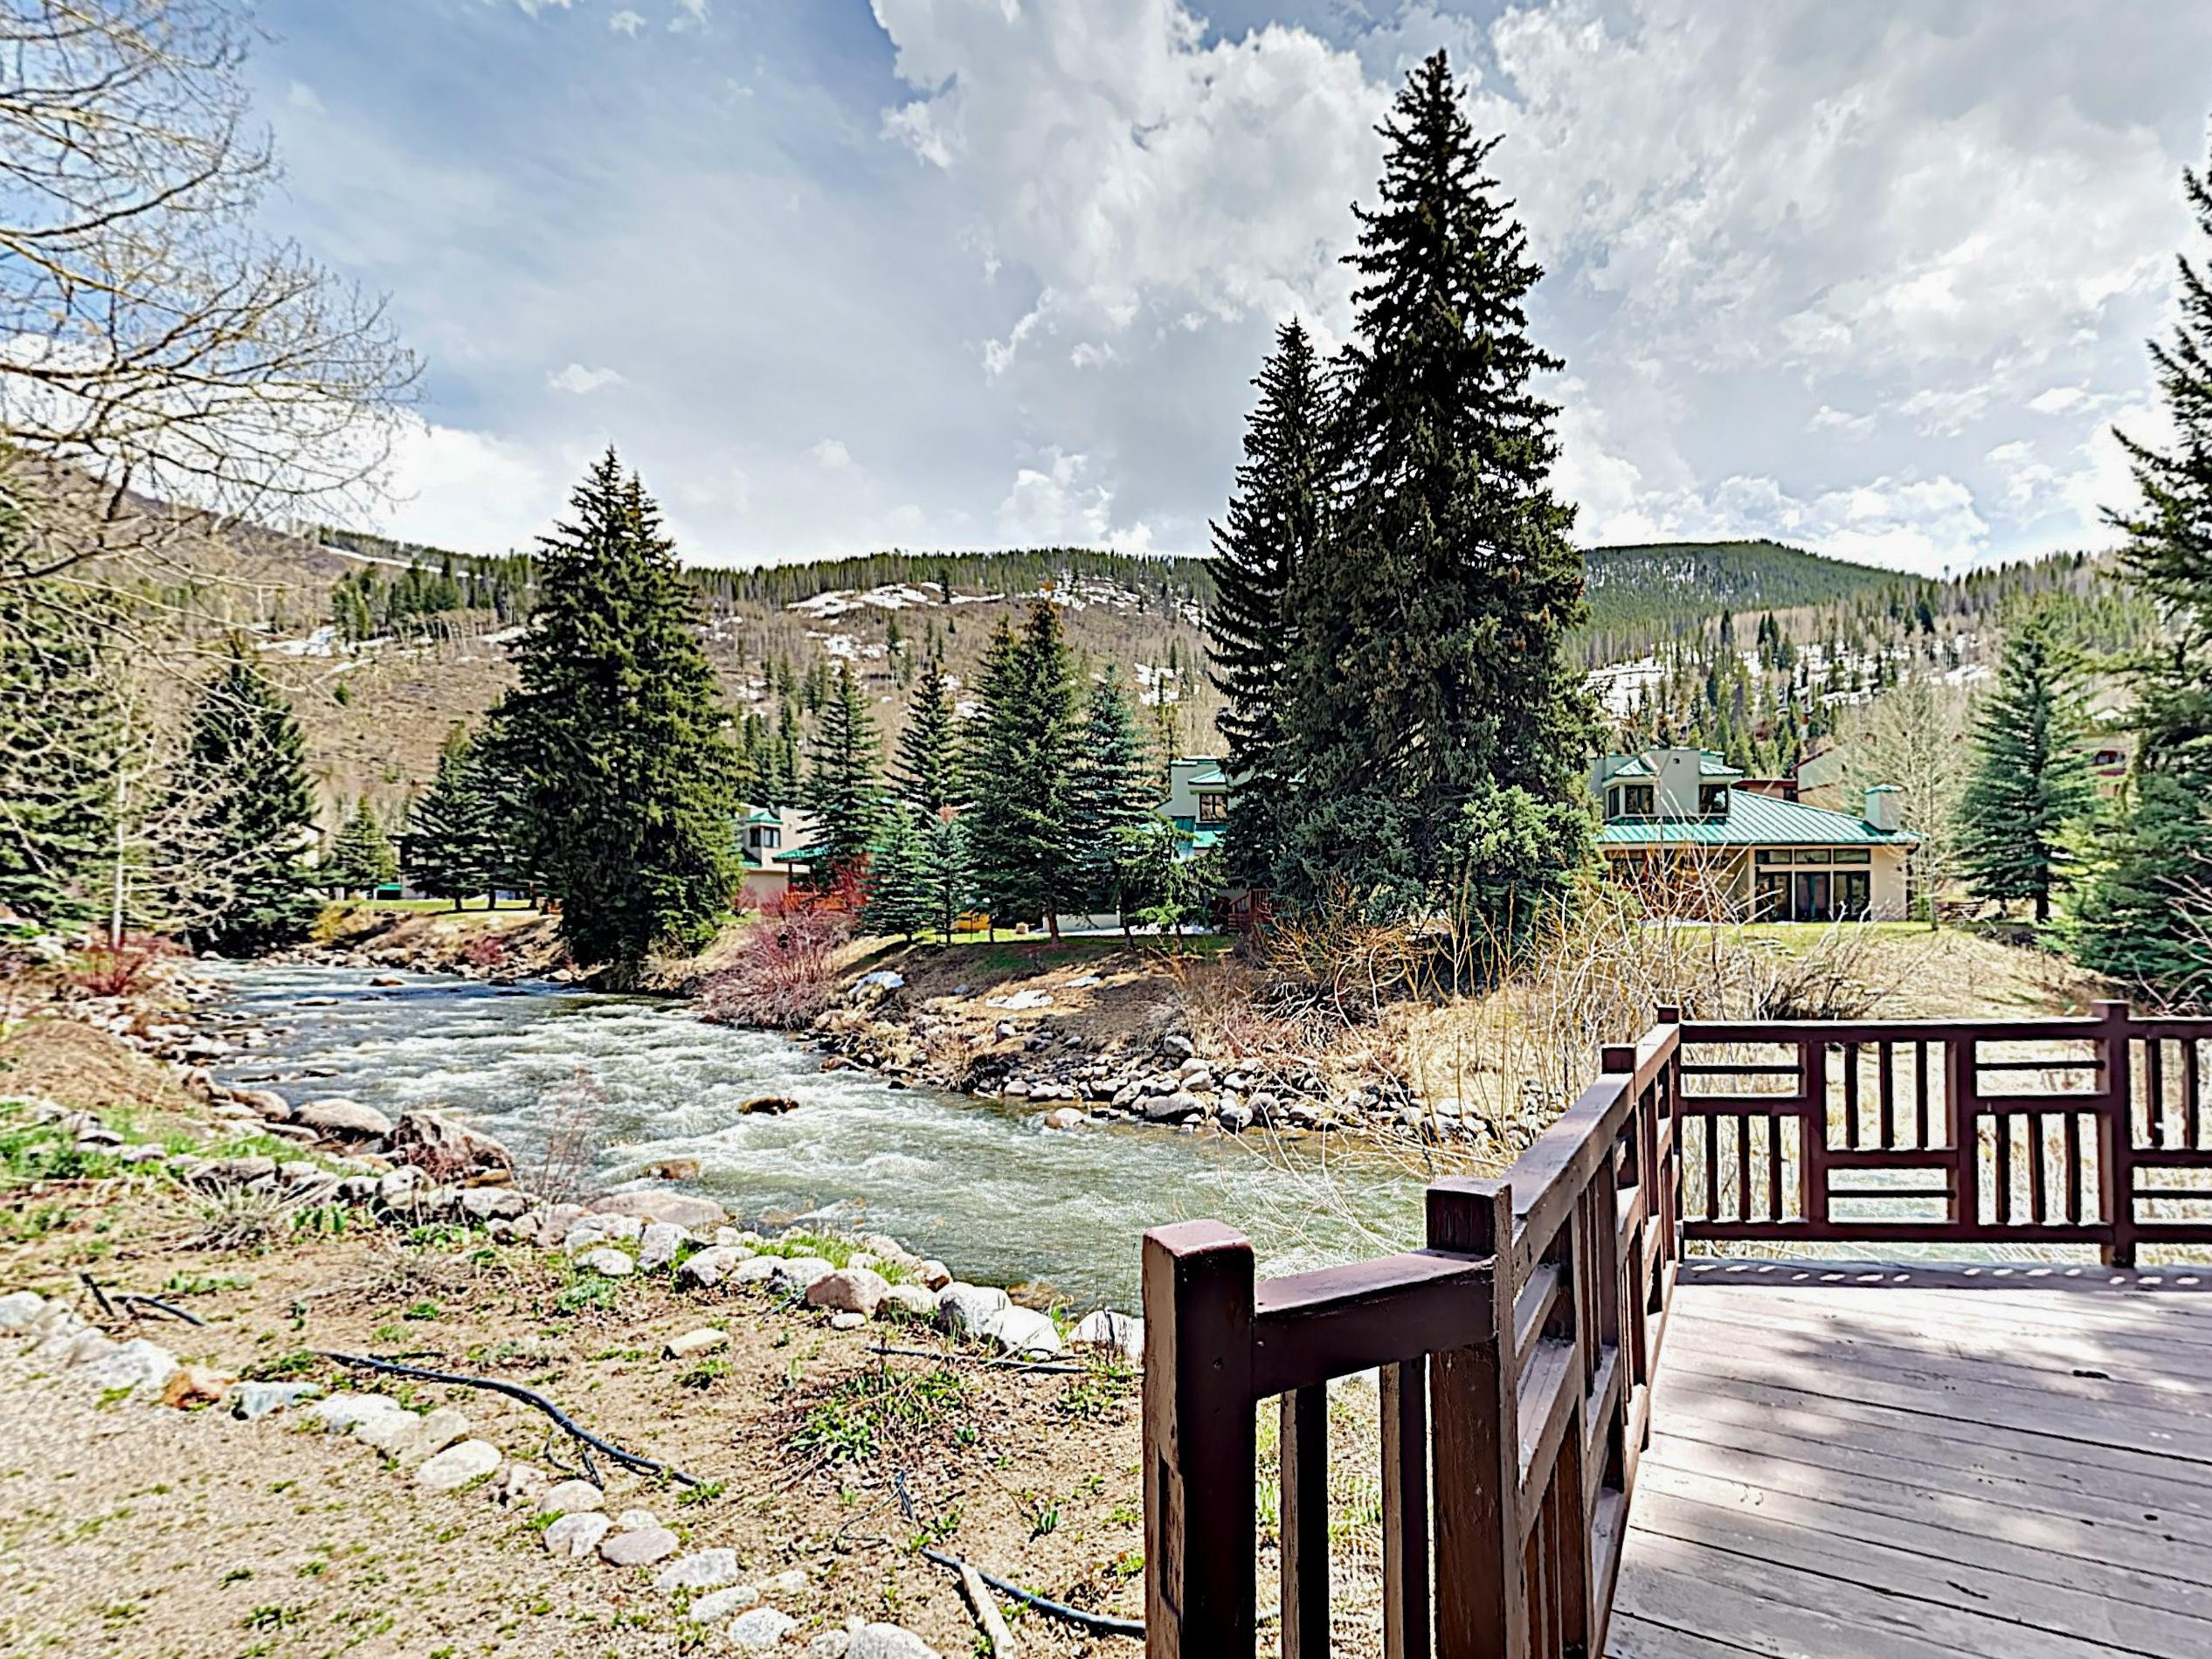 Gore Creek, an award-winning fly fishing stream, is just steps from your door.